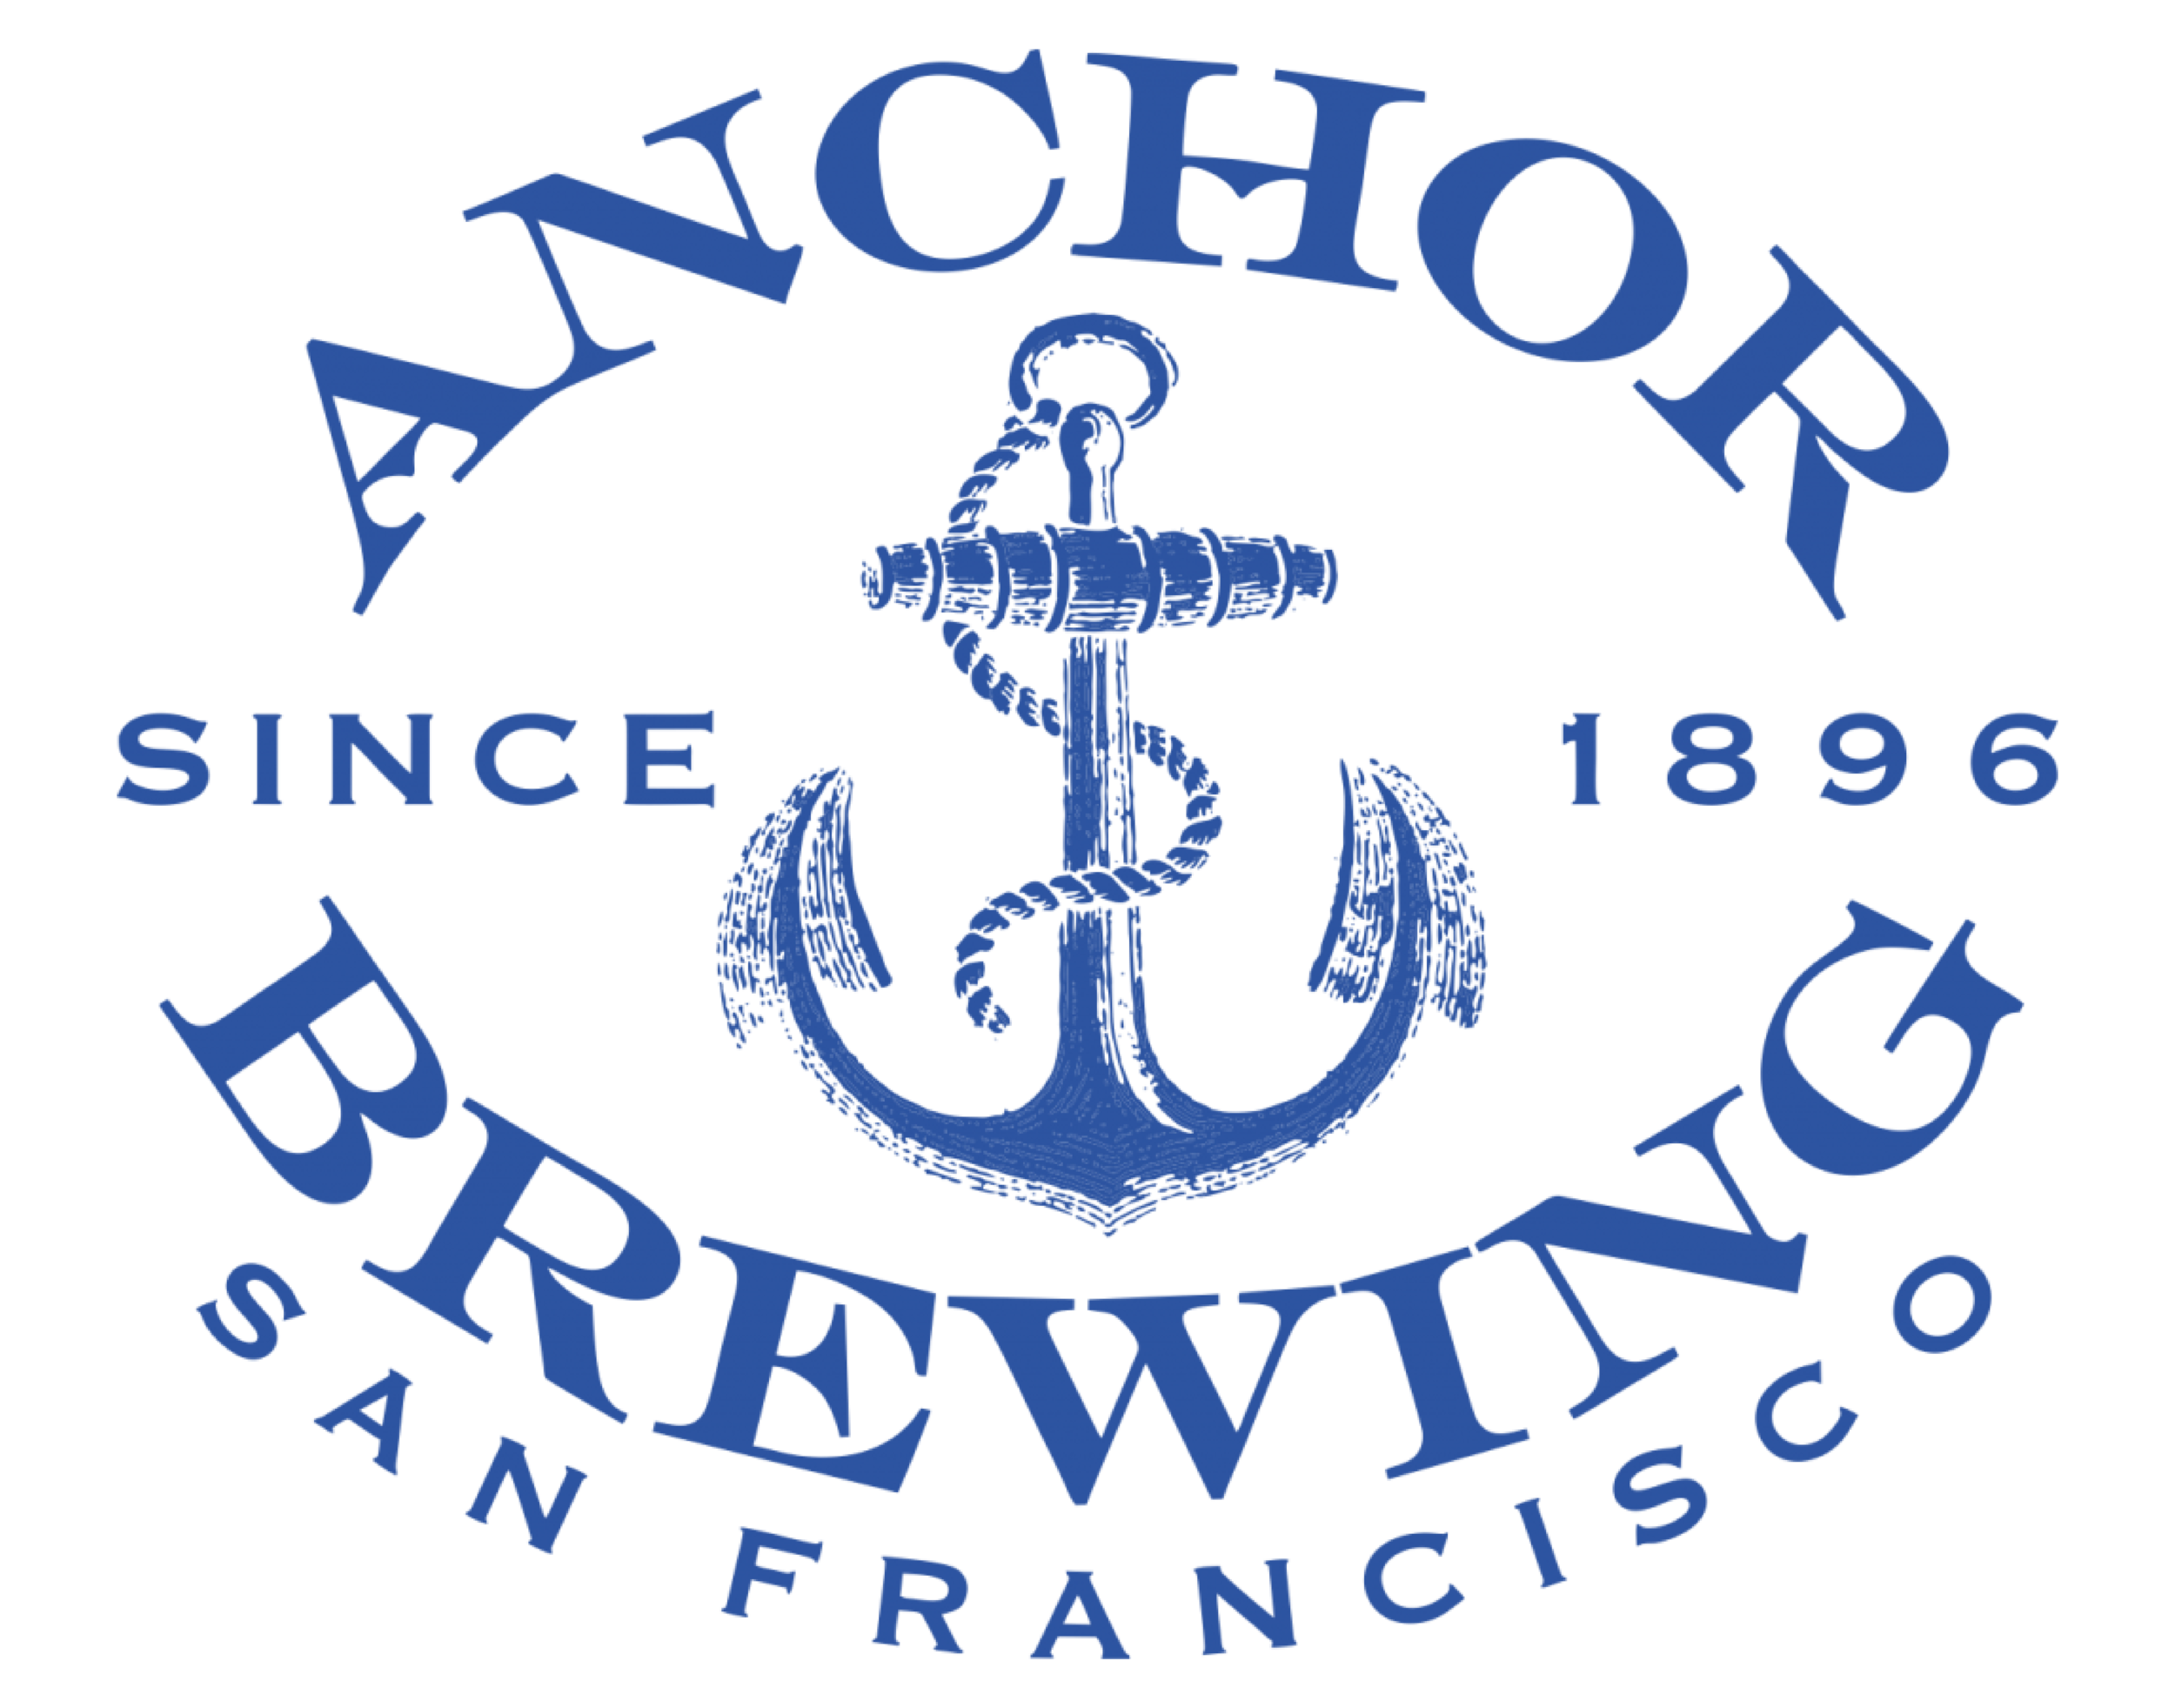 Anchor Brewing logo. Links to Anchor Brewing website.